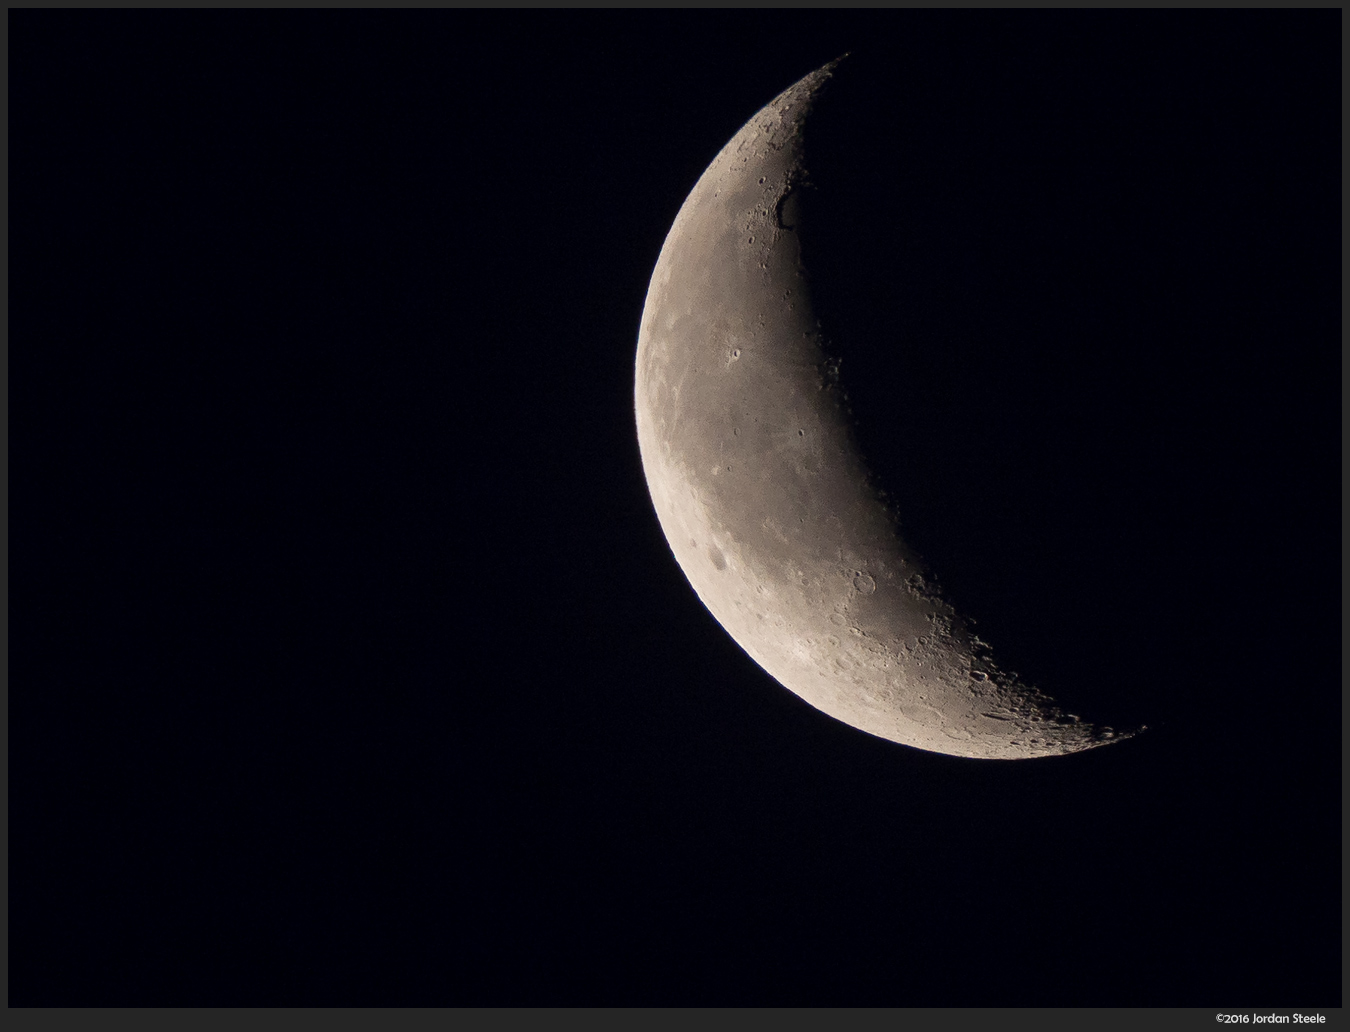 Crescent Moon - Olympus OM-D E-M10 Mark II with Panasonic Leica 100-400mm f/4-6.3 @